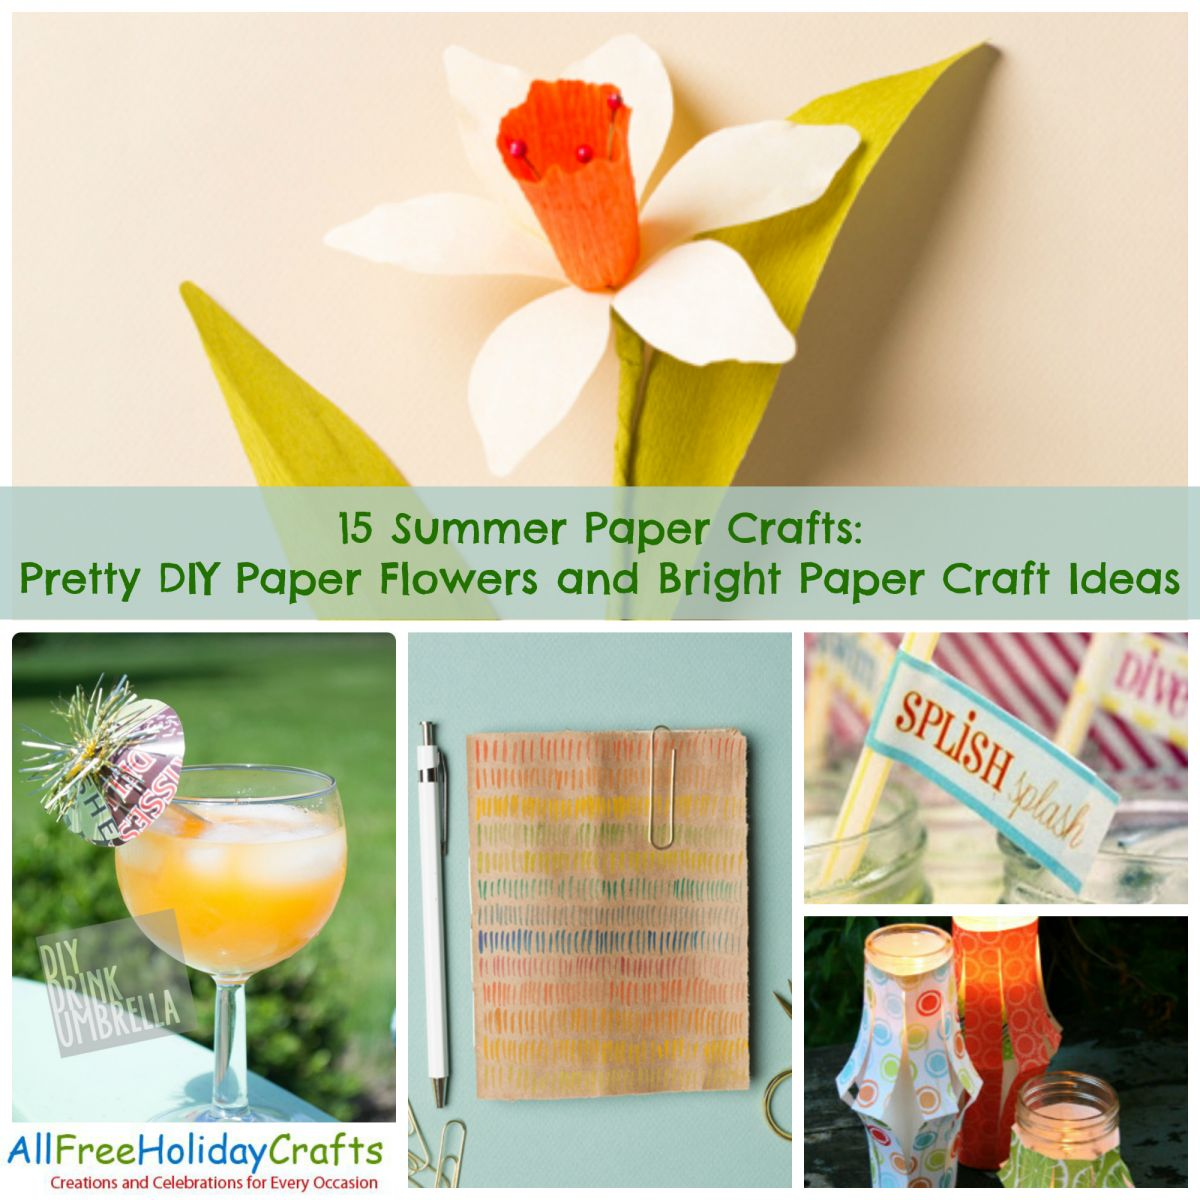 15 Summer Paper Crafts: Pretty DIY Paper Flowers and Bright Paper Craft Ideas